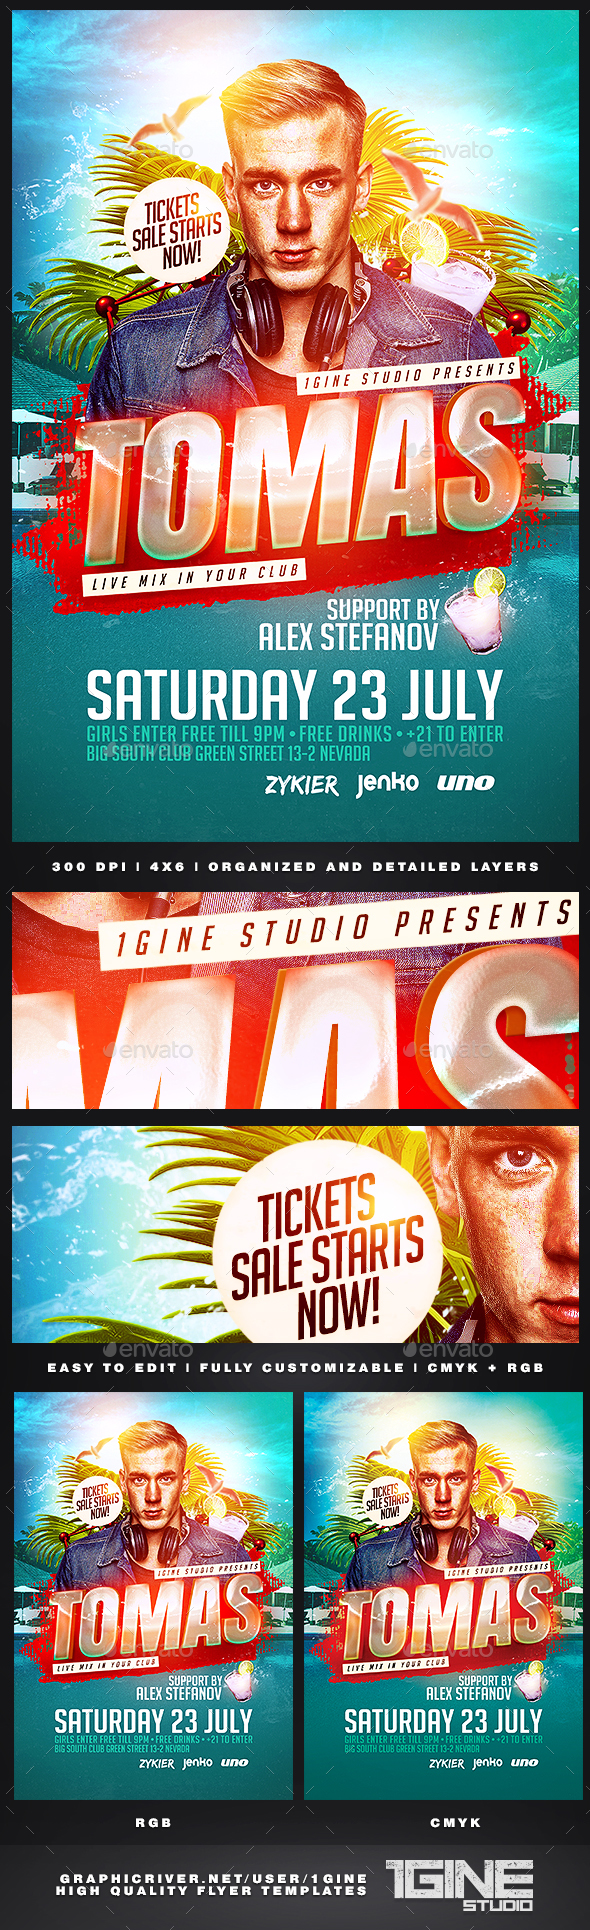 Summer DJ Flyer Template - Clubs & Parties Events